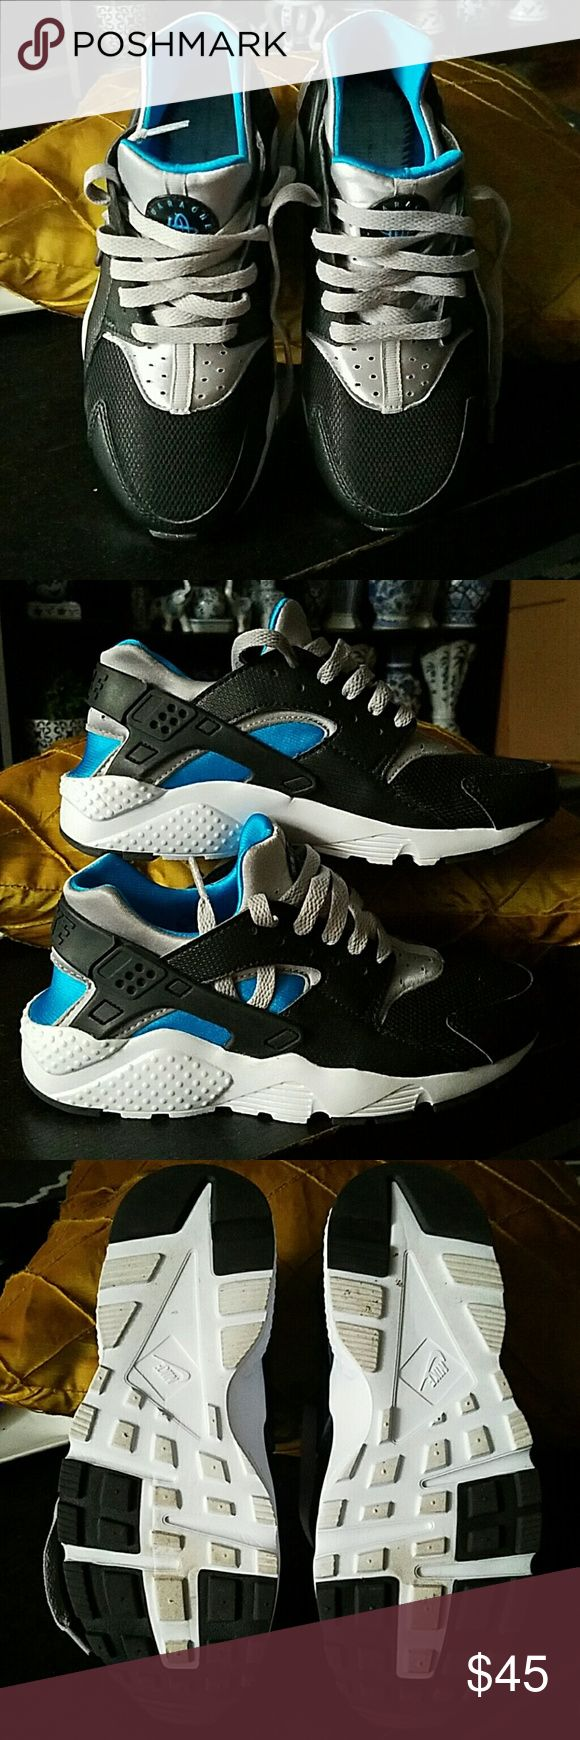 Kids Nike Huaraches SZ 3.5Y Great condition, like new, kids Nike Huaraches size 3.5Y, no insoles included. Bright blue, black, and white colorway, light on the feet, with secured ankles. Great for running and everyday activity. I took out the insoles in hopes it would be fit me just fine, but it's still a little snug (I'm a women's size 6). These true to size, so if you are a 5-5.5 in womens, this will fit you well.  Insoles are not included, but I can include it for extra price. Nike Shoes…